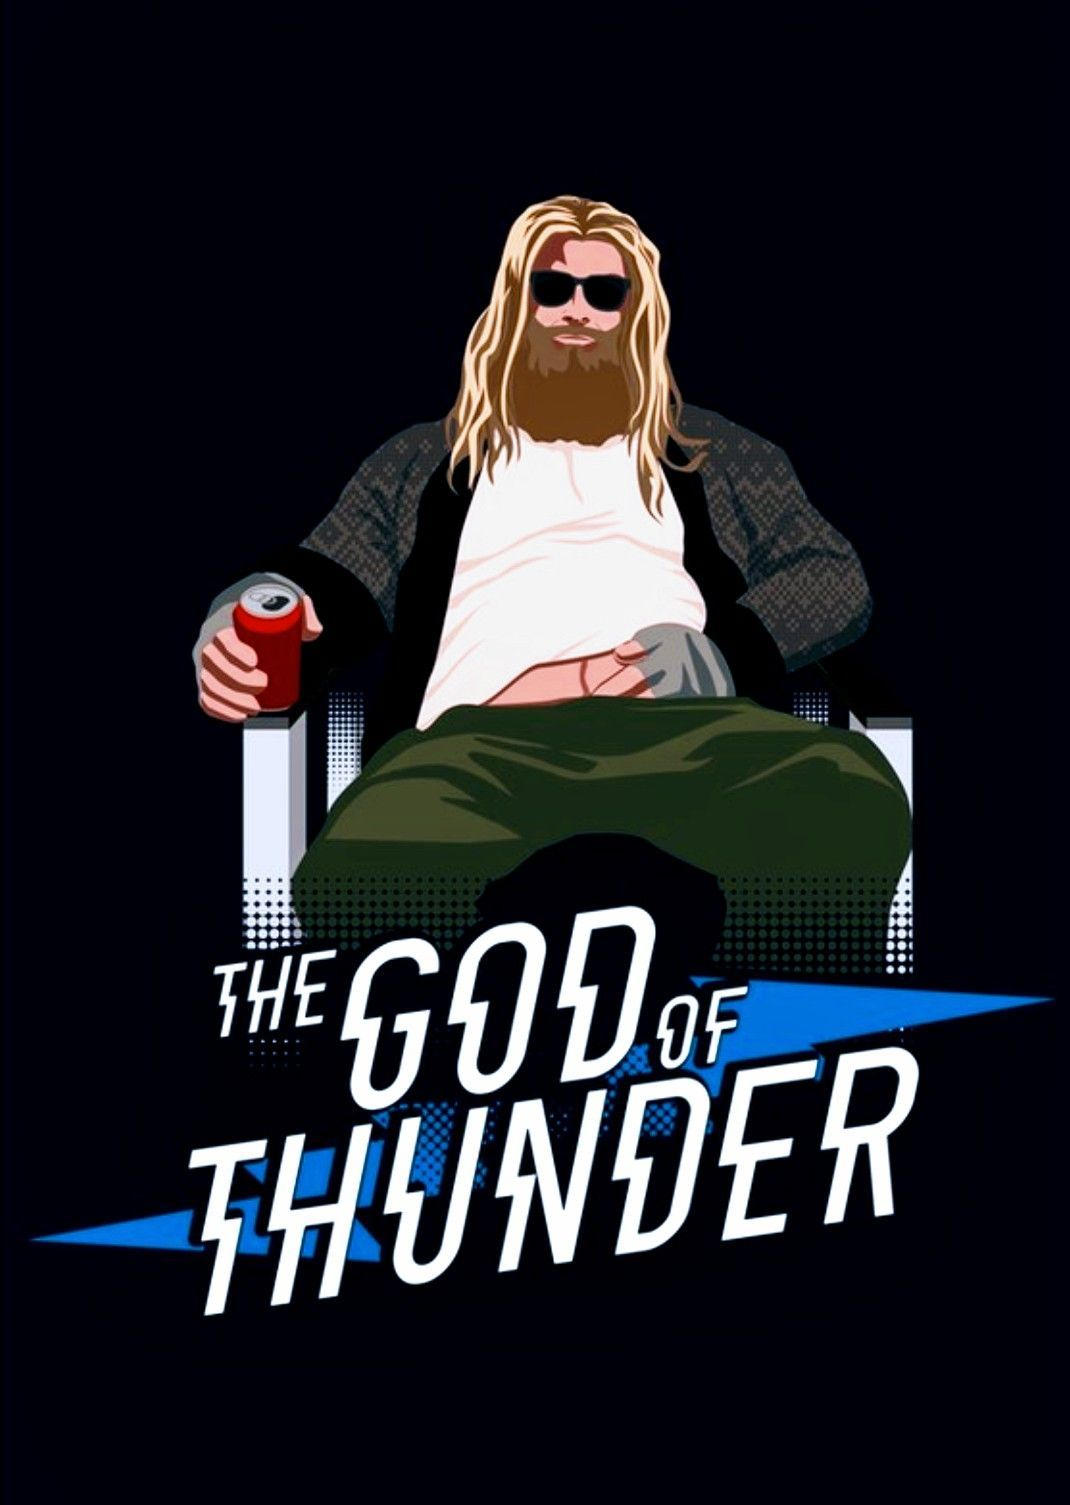 Thor - The God of Thunder, Avengers: End Game in 2020 ...